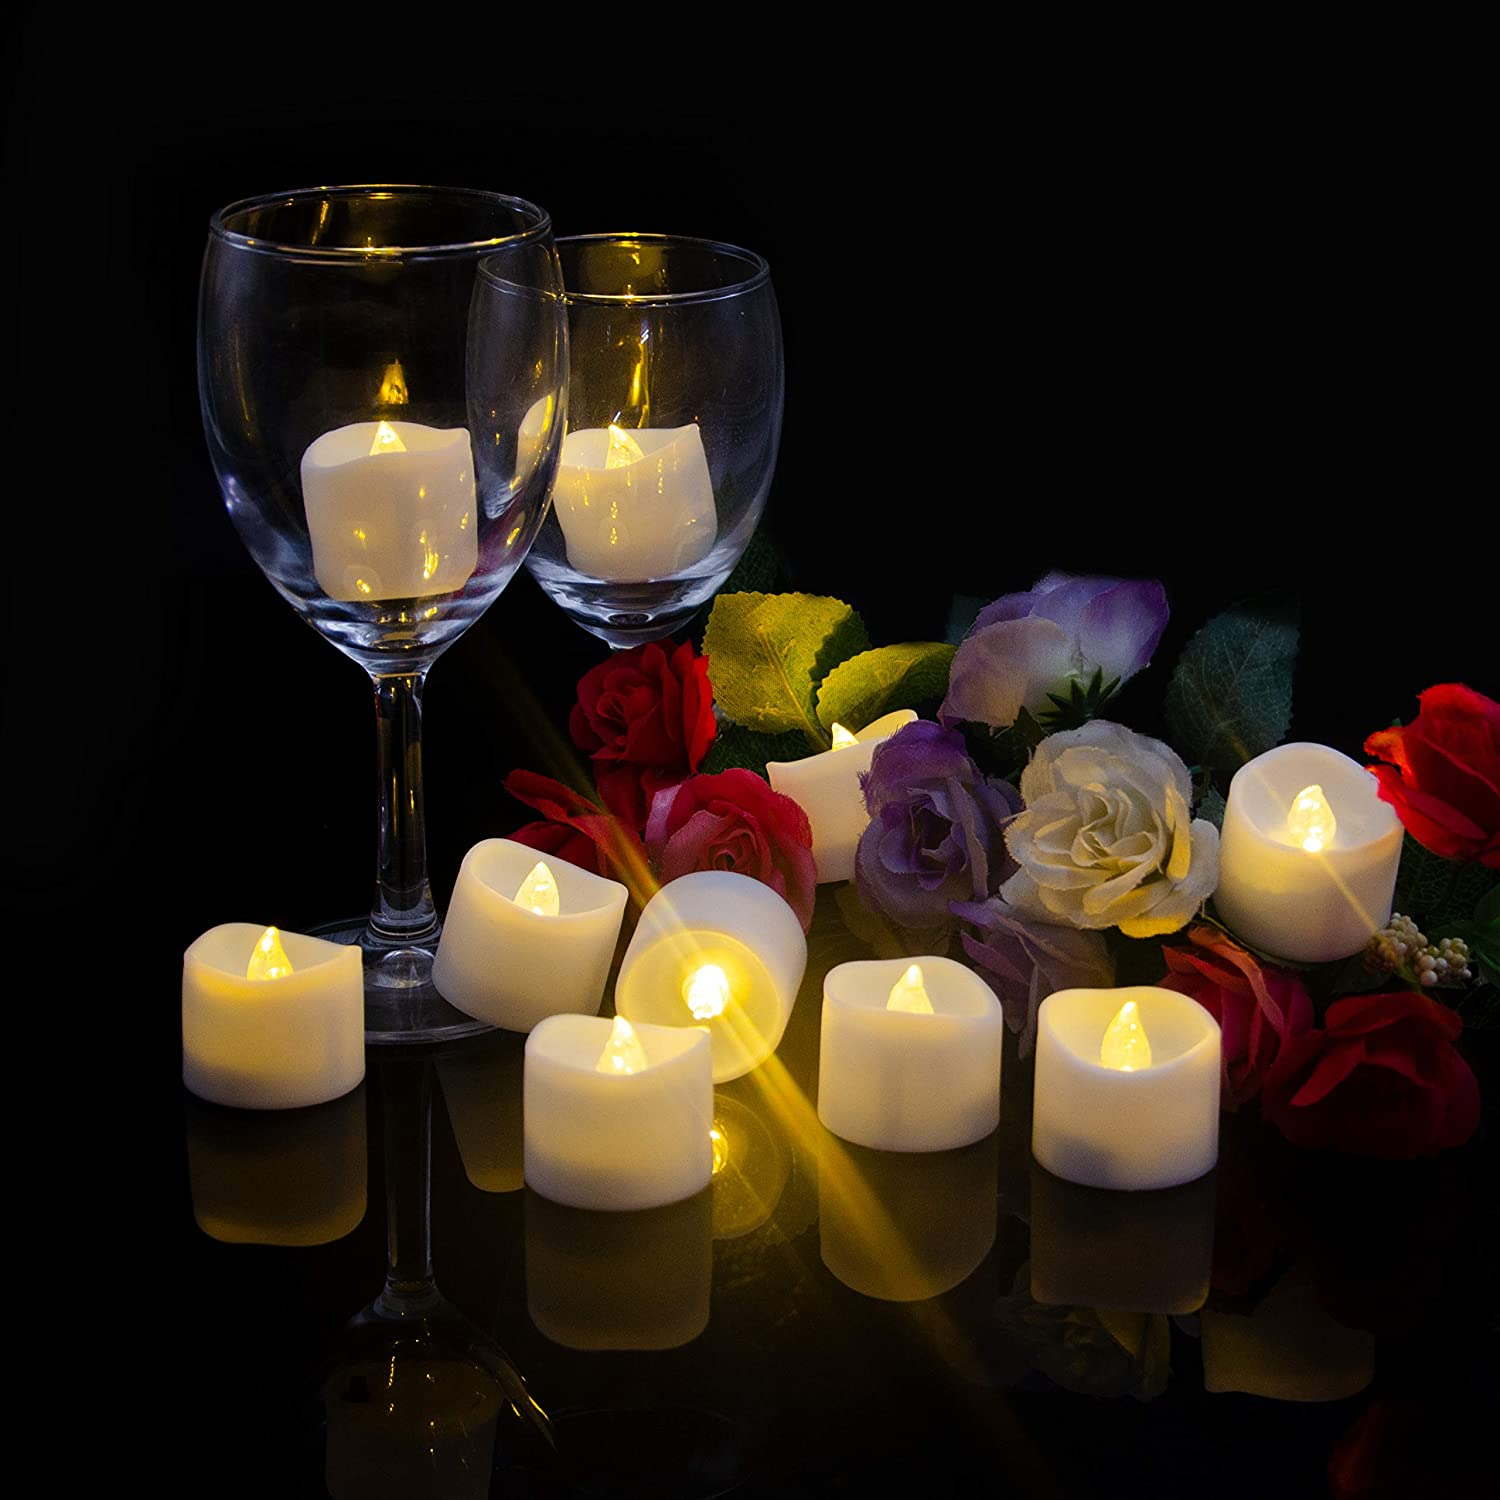 Flameless LED Candles, Pack of 12 Flameless Votive Candles Warm White Led Lights for Wedding and Tables Decoration,Gifts for Festival Celebration,Halloween,Christmas